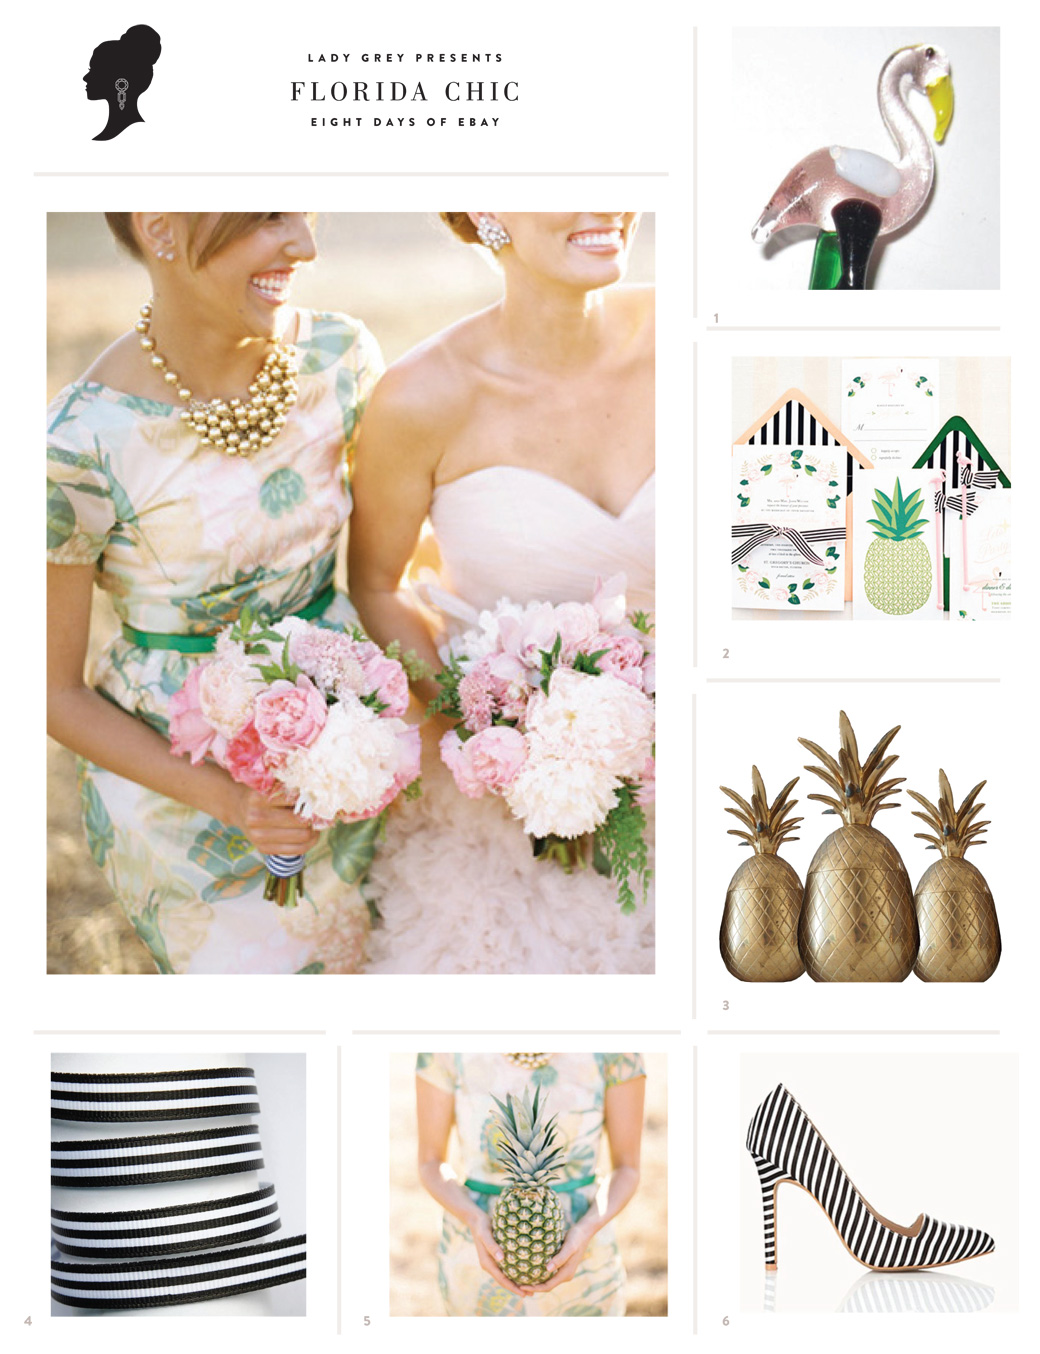 Wedding Blog Florida Chic